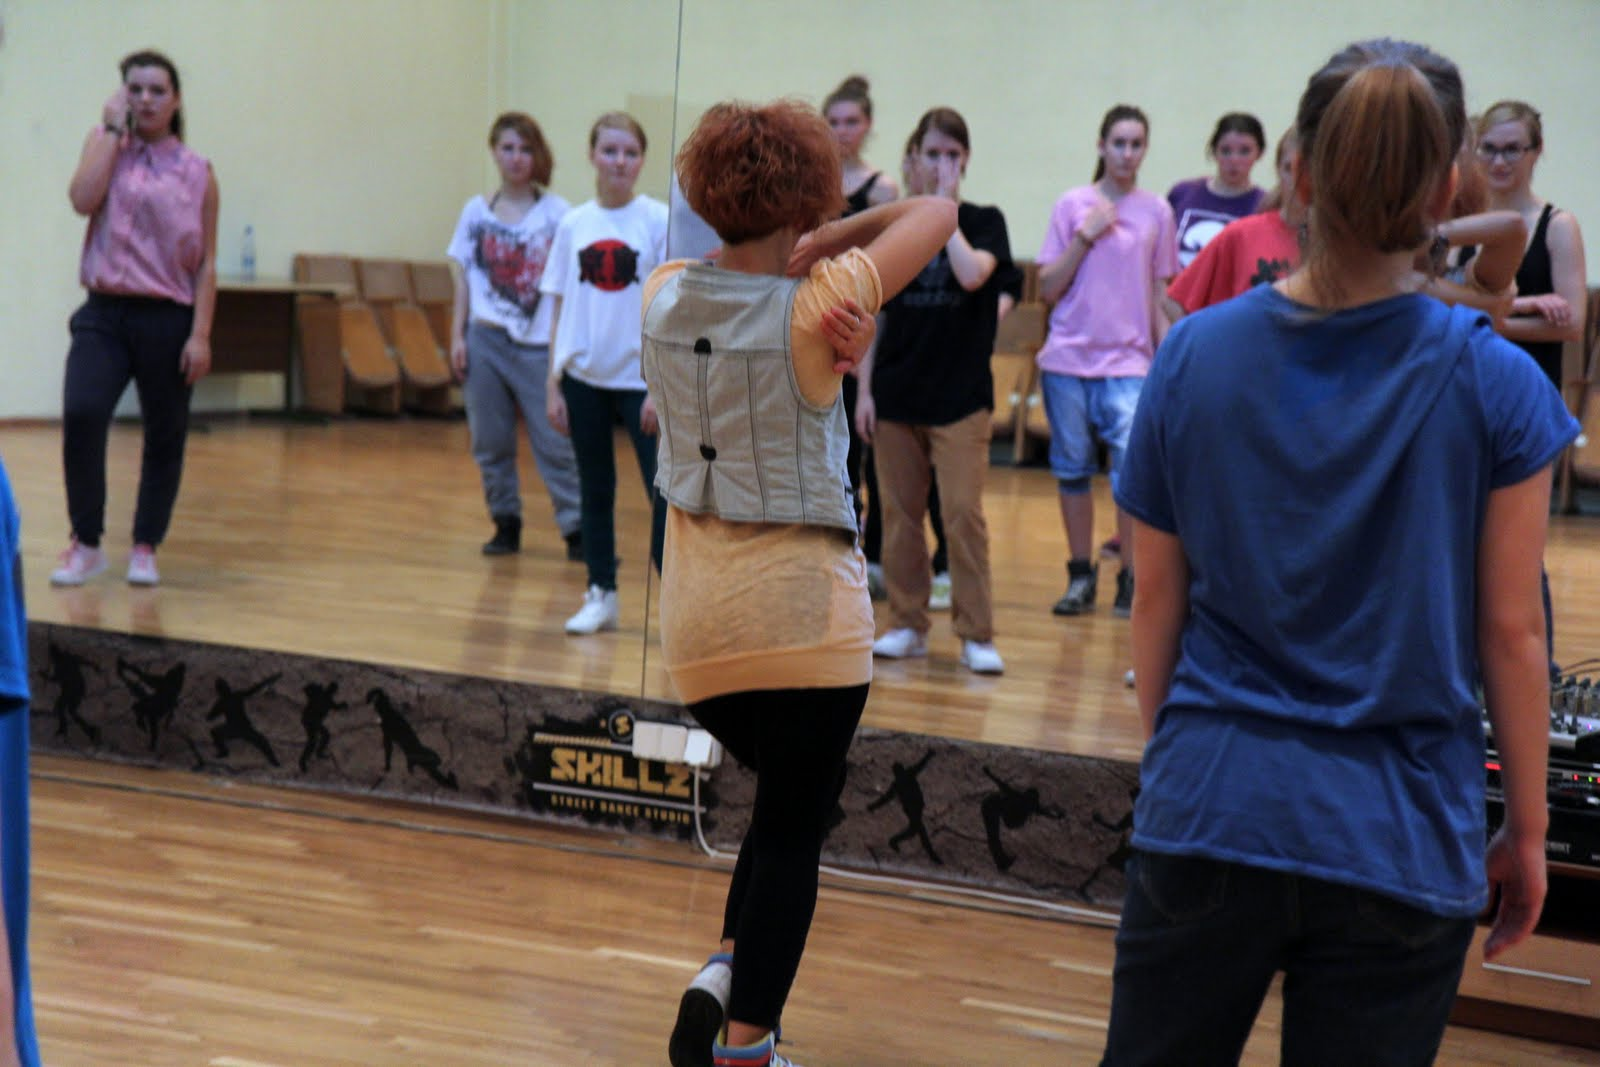 Waacking workshop with Nastya (LV) - IMG_2008.JPG